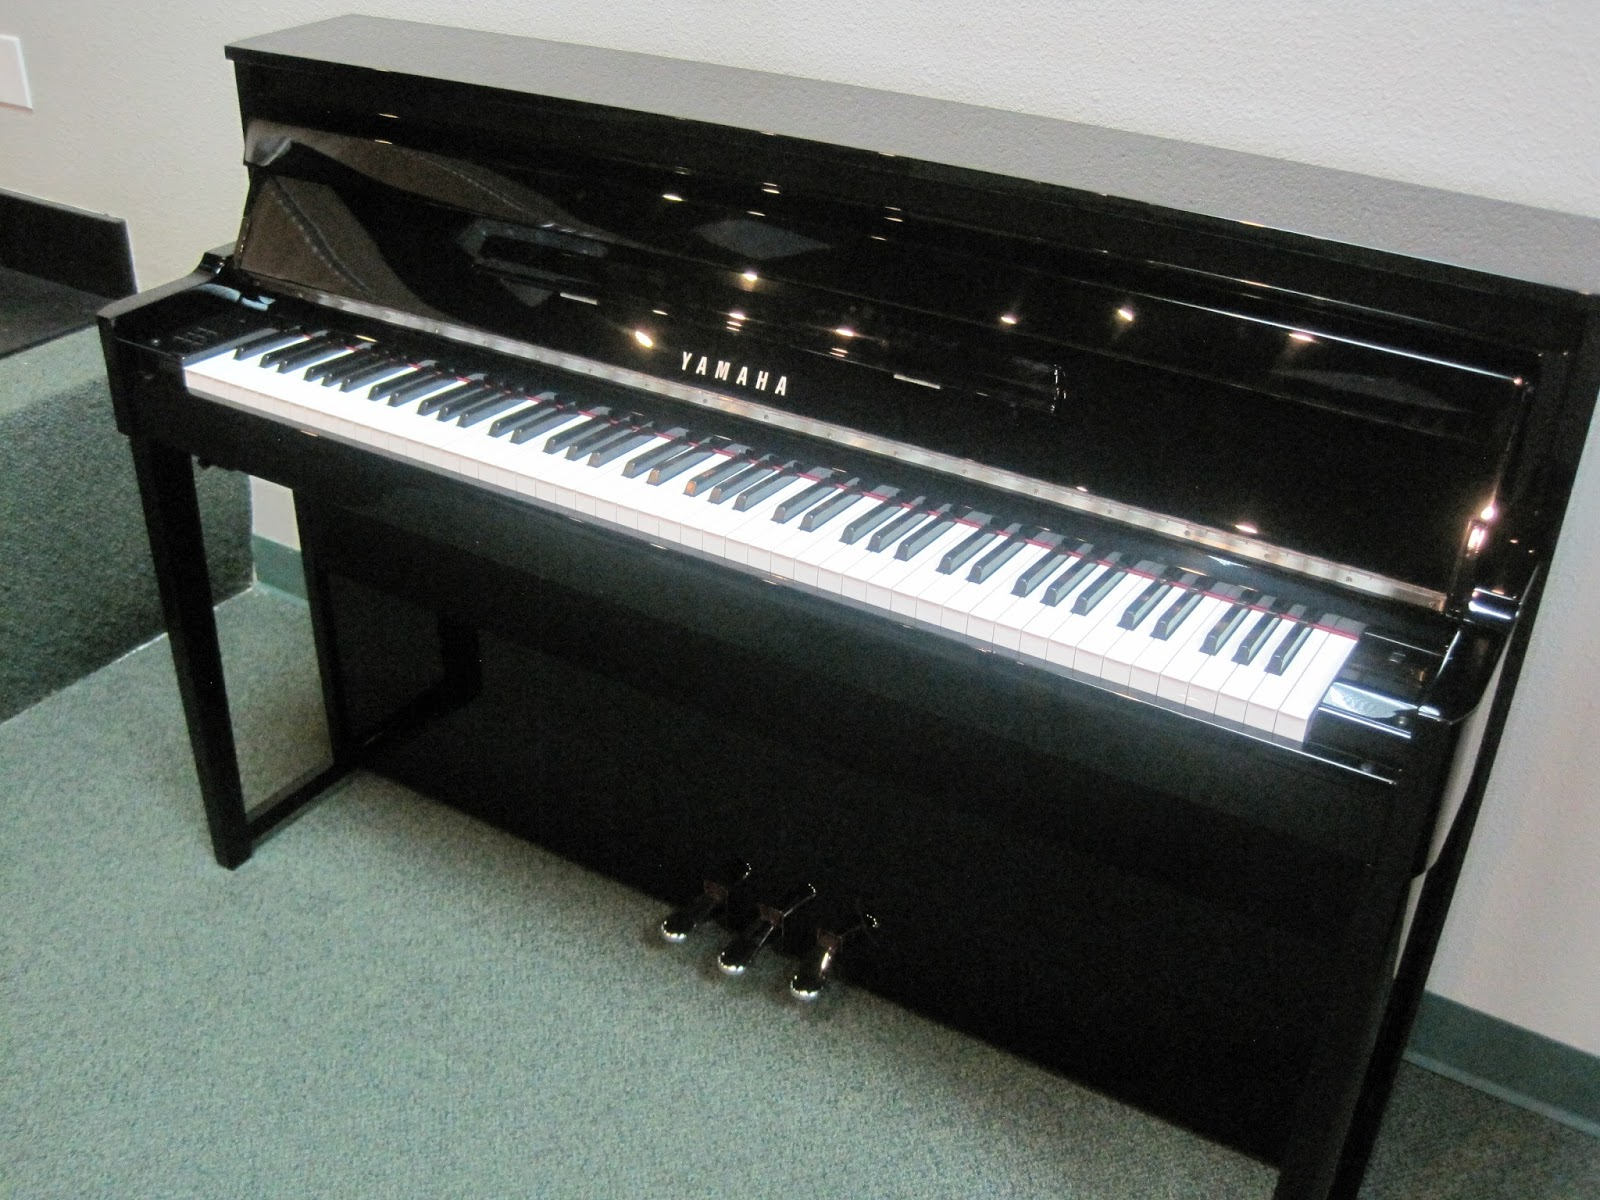 Az piano reviews review yamaha nu1 digital piano for Yamaha piano keyboard models